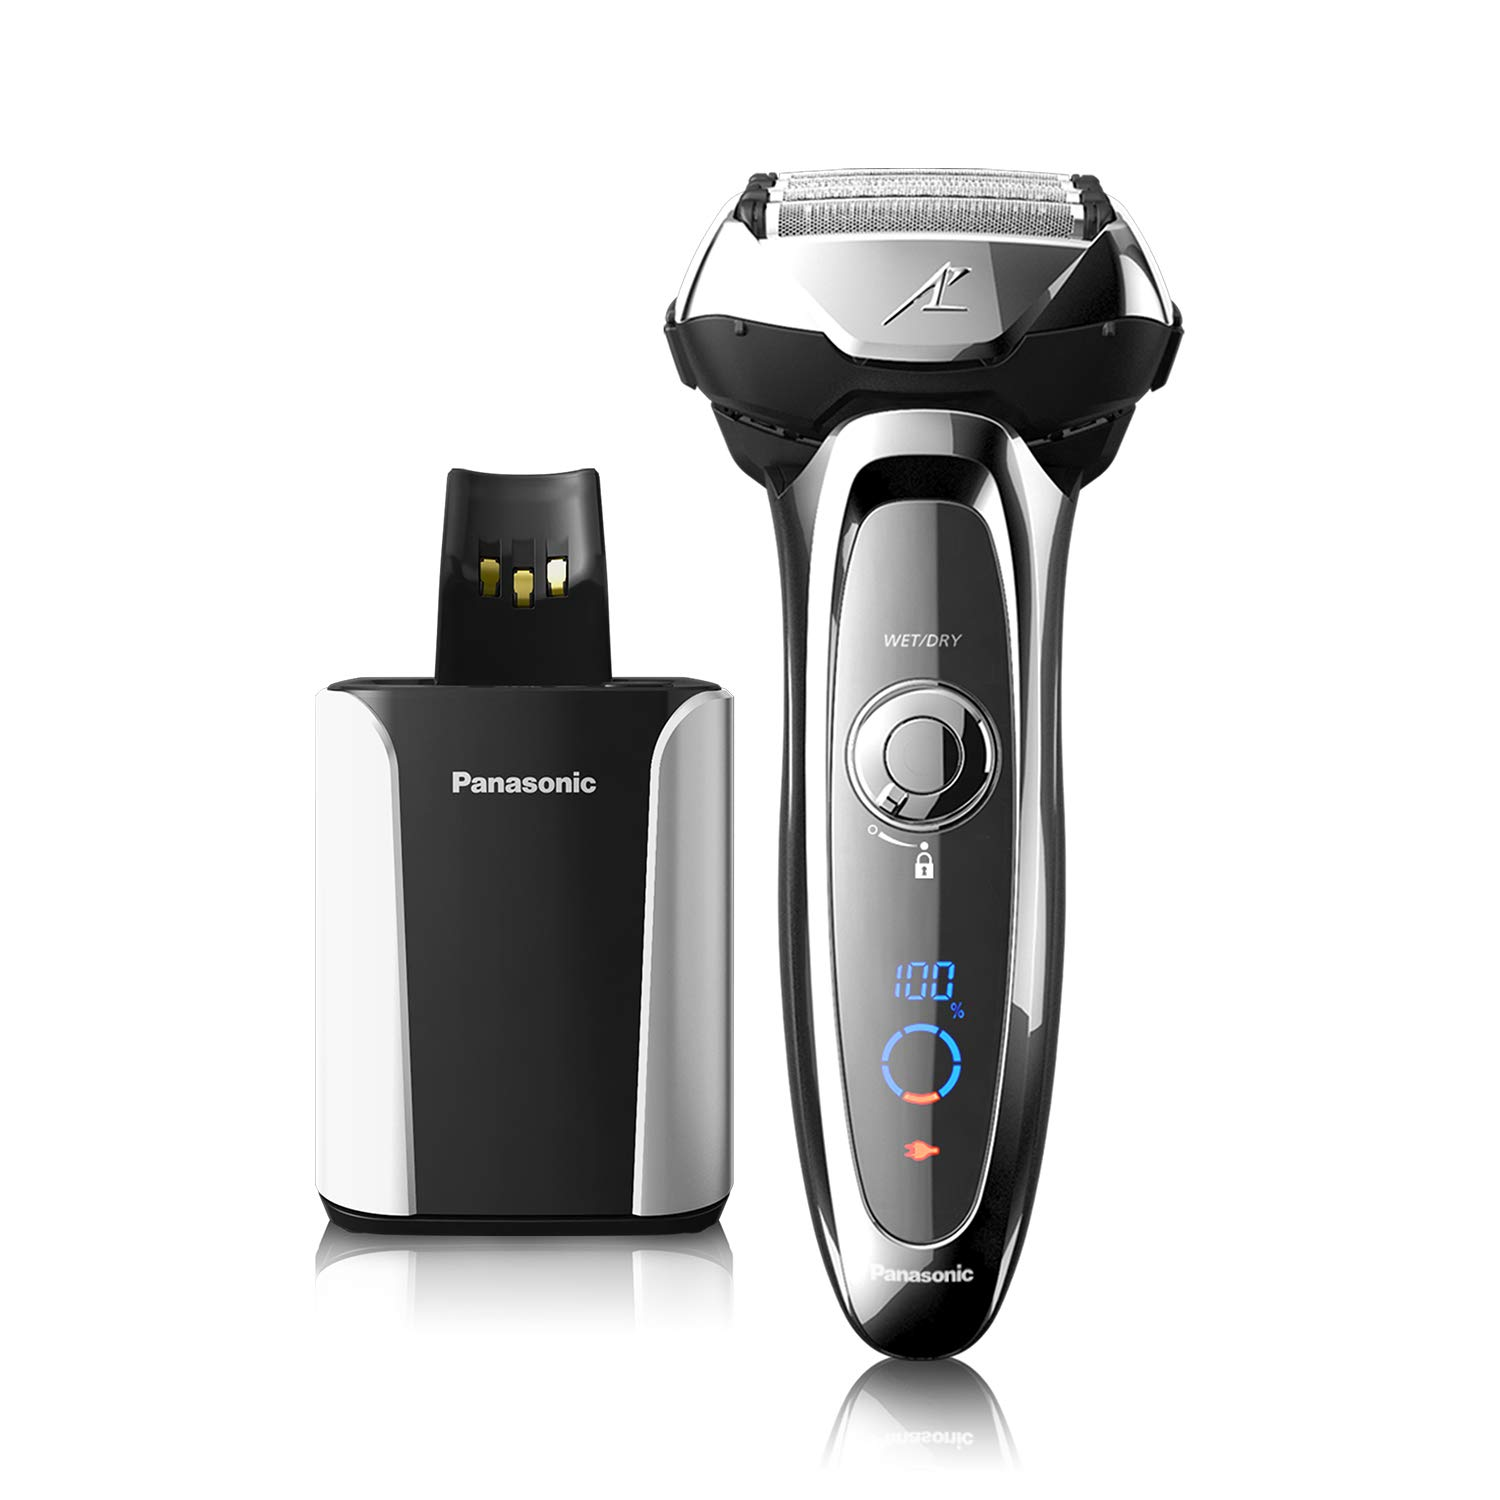 Best Foil Shaver in 2020: Reviews & Buying Guide 4